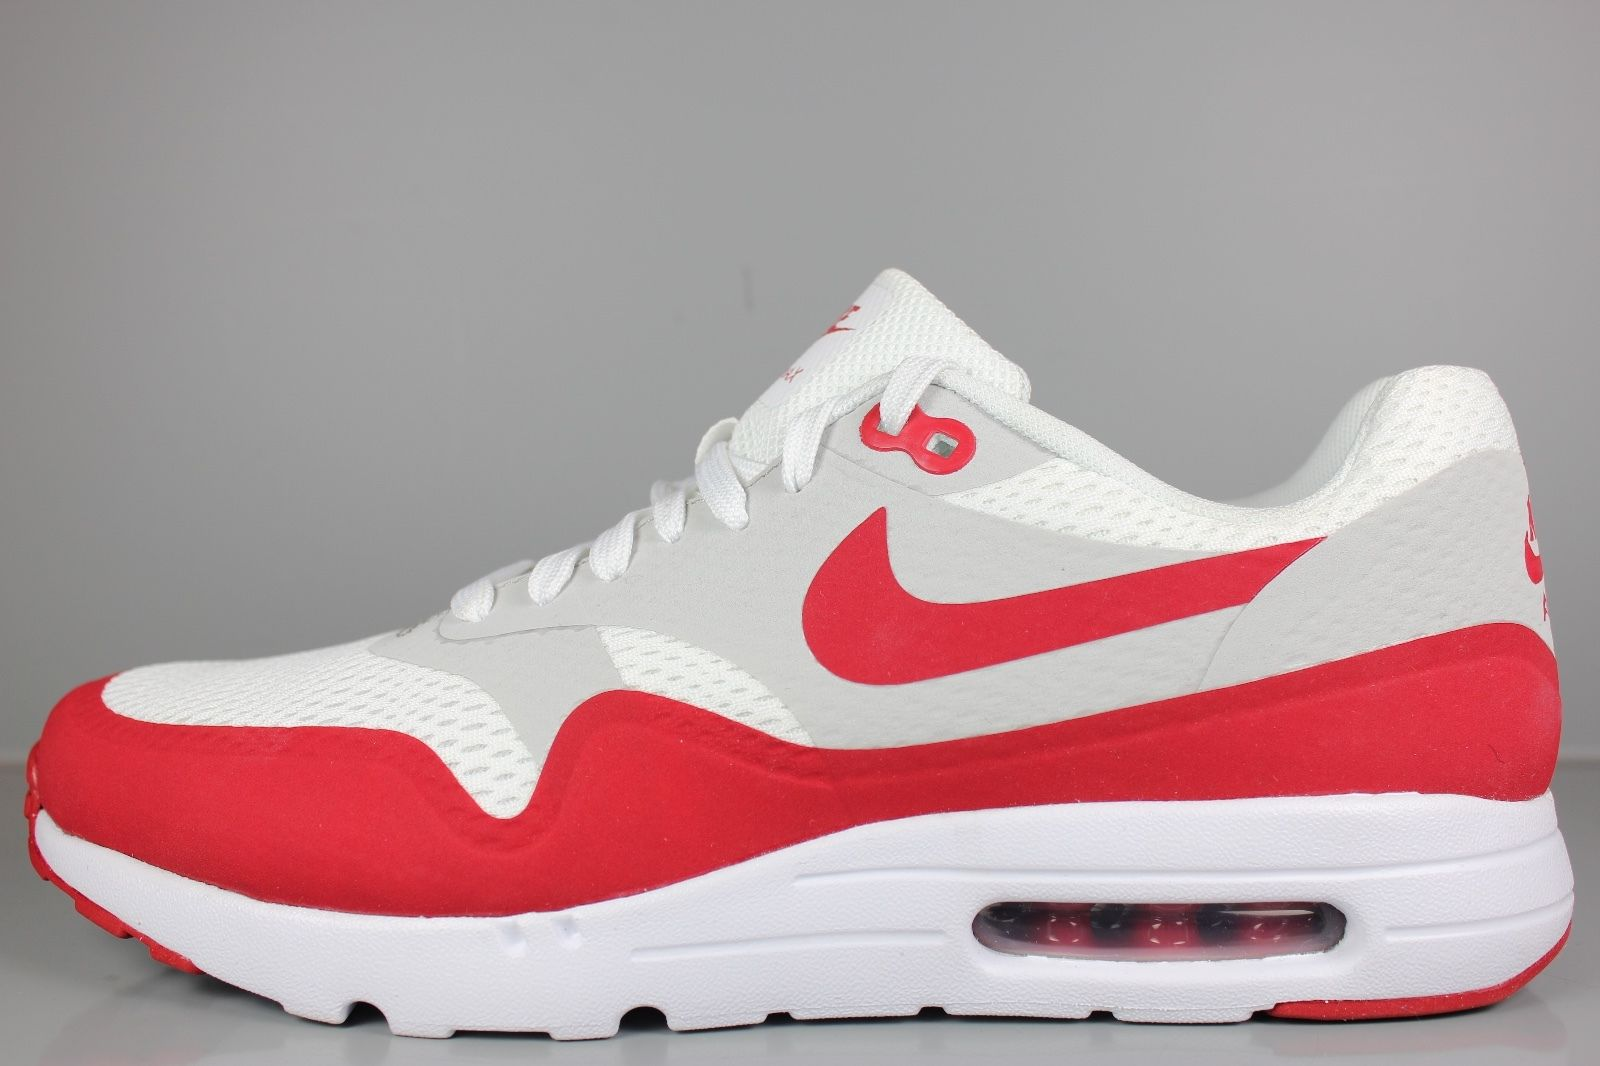 save off 9f4af 85397 Production year  2015. Model  NIKE AIR MAX ...